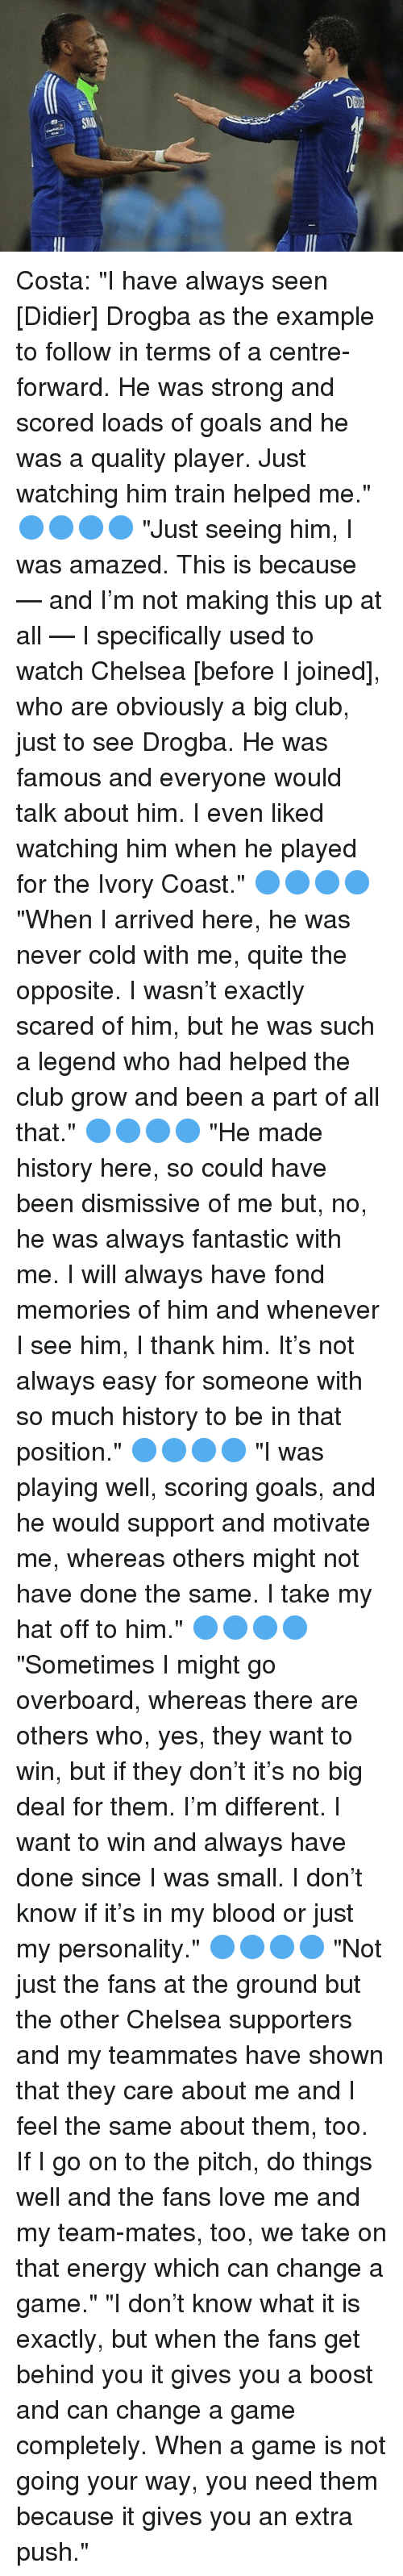 """Fonded: DE2 Costa: """"I have always seen [Didier] Drogba as the example to follow in terms of a centre-forward. He was strong and scored loads of goals and he was a quality player. Just watching him train helped me."""" 🔵🔵🔵🔵 """"Just seeing him, I was amazed. This is because — and I'm not making this up at all — I specifically used to watch Chelsea [before I joined], who are obviously a big club, just to see Drogba. He was famous and everyone would talk about him. I even liked watching him when he played for the Ivory Coast."""" 🔵🔵🔵🔵 """"When I arrived here, he was never cold with me, quite the opposite. I wasn't exactly scared of him, but he was such a legend who had helped the club grow and been a part of all that."""" 🔵🔵🔵🔵 """"He made history here, so could have been dismissive of me but, no, he was always fantastic with me. I will always have fond memories of him and whenever I see him, I thank him. It's not always easy for someone with so much history to be in that position."""" 🔵🔵🔵🔵 """"I was playing well, scoring goals, and he would support and motivate me, whereas others might not have done the same. I take my hat off to him."""" 🔵🔵🔵🔵 """"Sometimes I might go overboard, whereas there are others who, yes, they want to win, but if they don't it's no big deal for them. I'm different. I want to win and always have done since I was small. I don't know if it's in my blood or just my personality."""" 🔵🔵🔵🔵 """"Not just the fans at the ground but the other Chelsea supporters and my teammates have shown that they care about me and I feel the same about them, too. If I go on to the pitch, do things well and the fans love me and my team-mates, too, we take on that energy which can change a game."""" """"I don't know what it is exactly, but when the fans get behind you it gives you a boost and can change a game completely. When a game is not going your way, you need them because it gives you an extra push."""""""